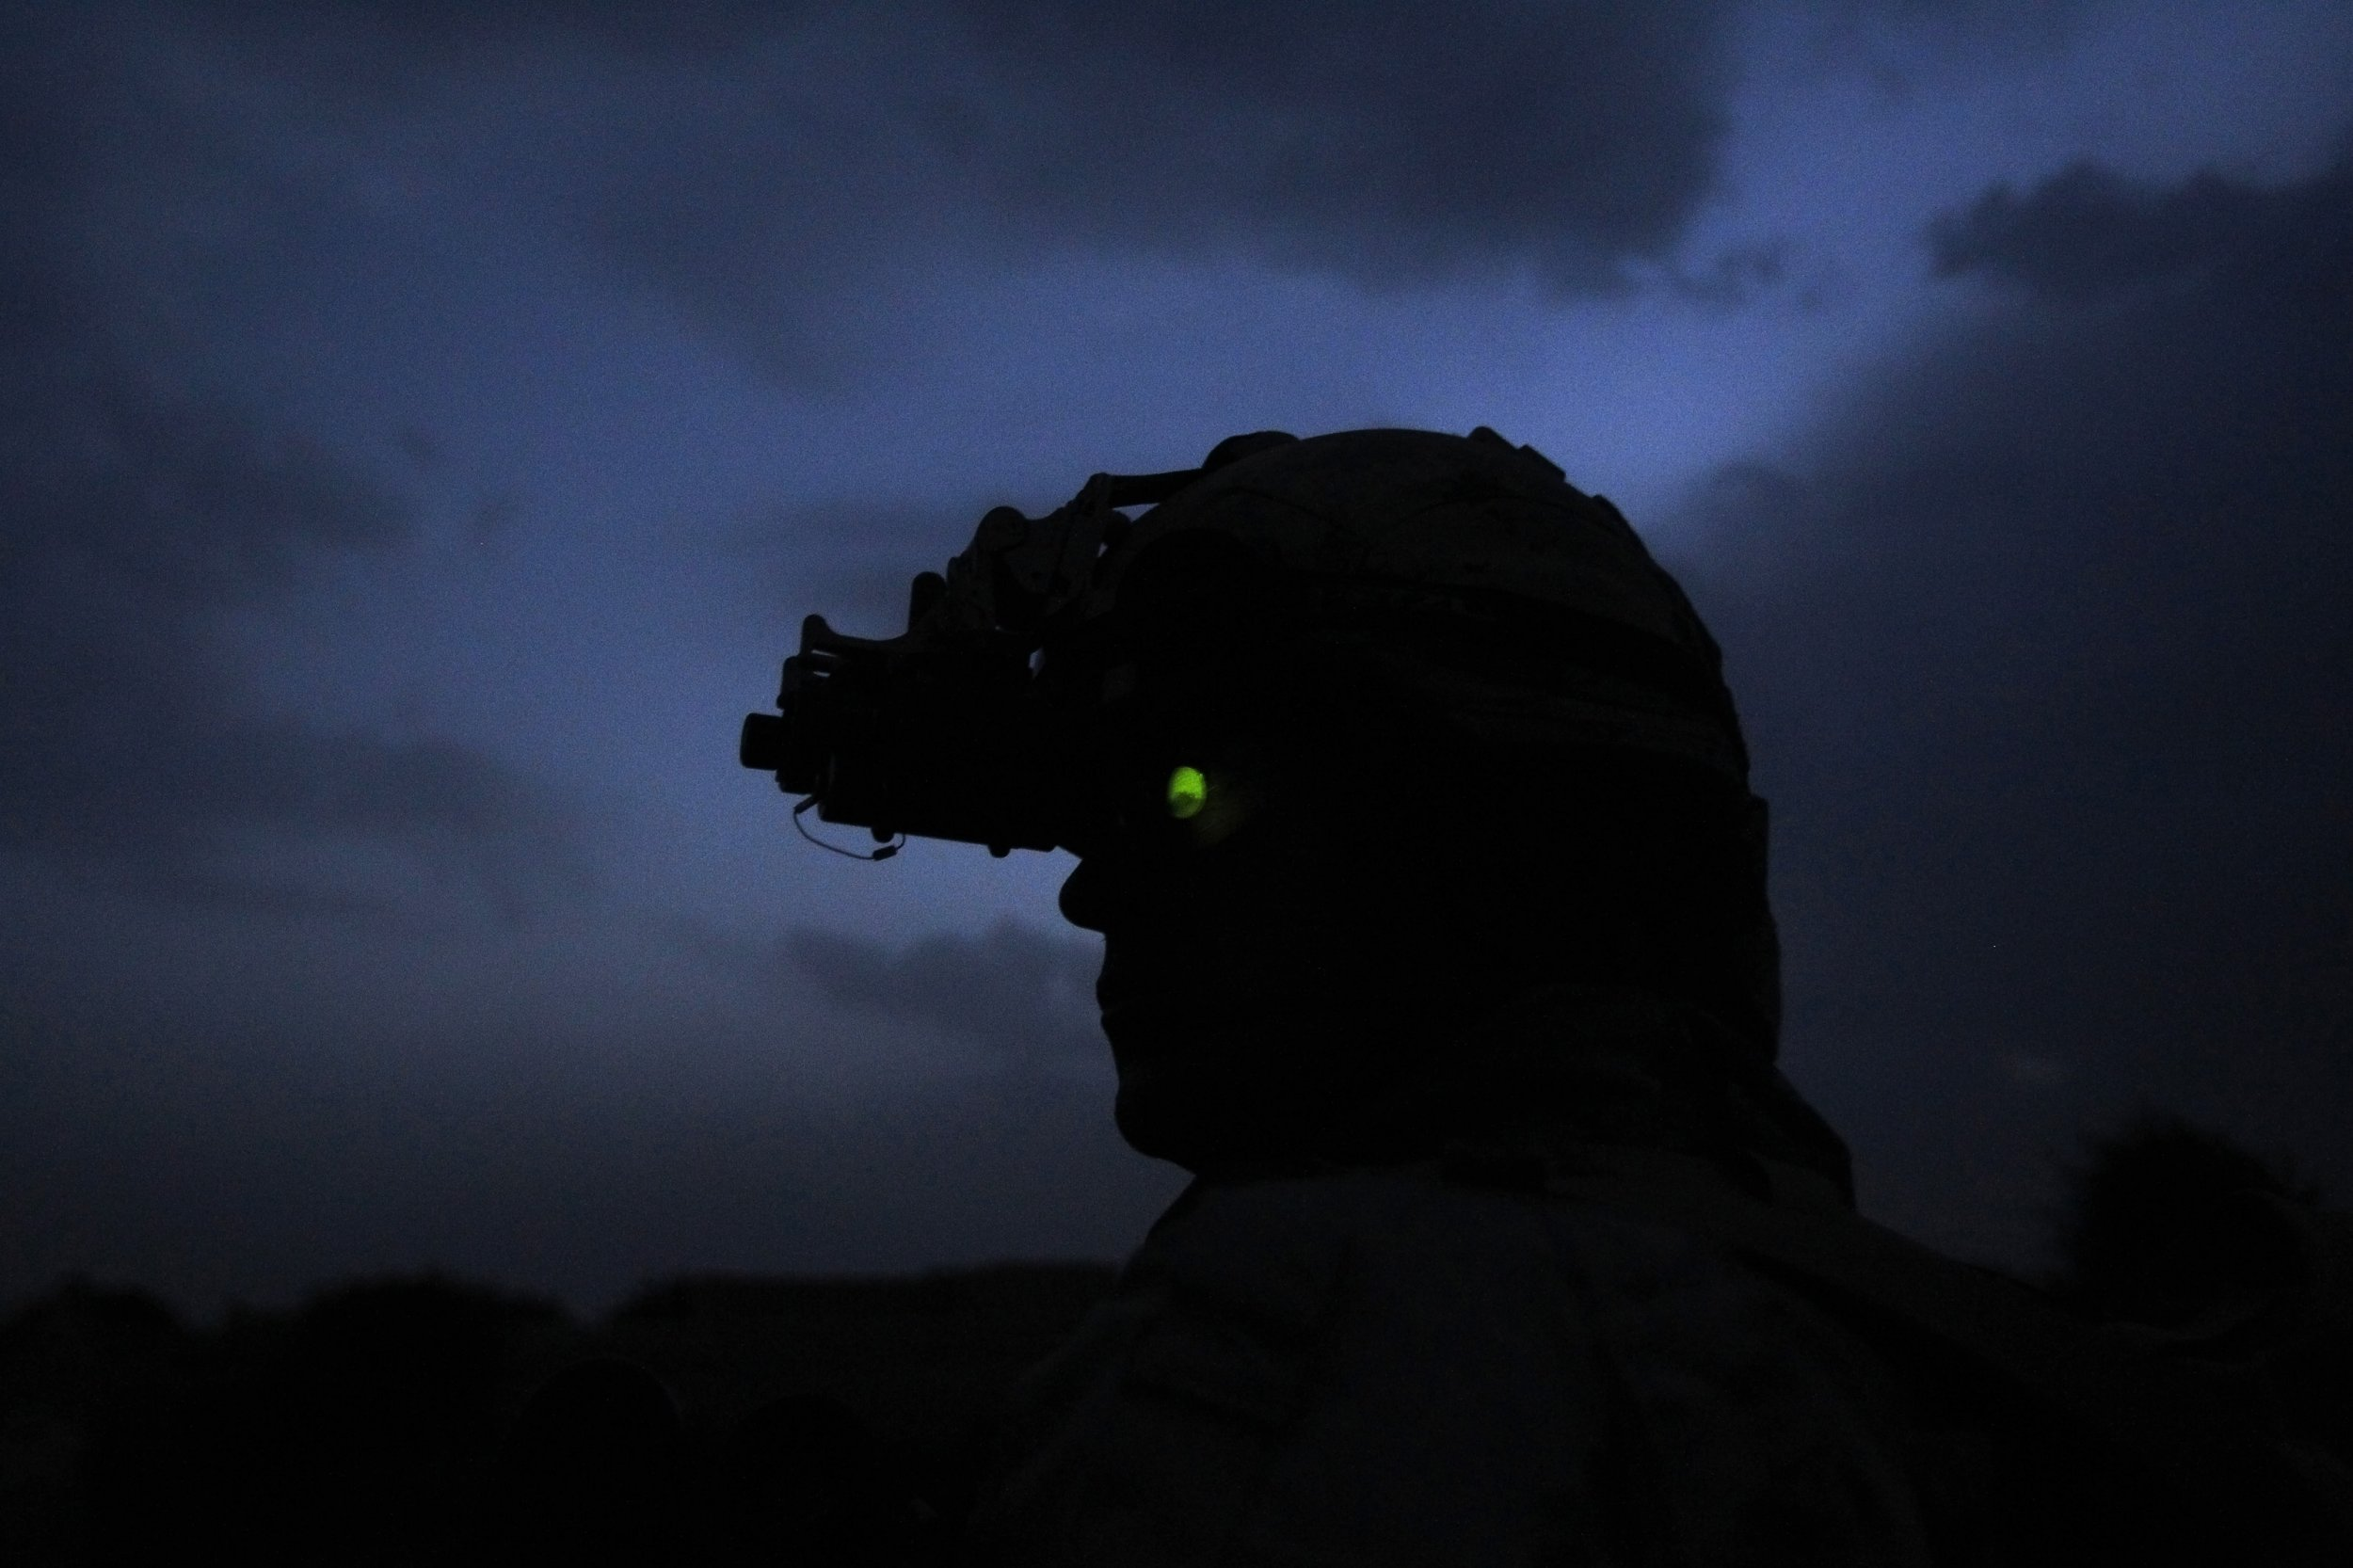 The Taliban is now using Russian night-vision goggles to carry out attacks